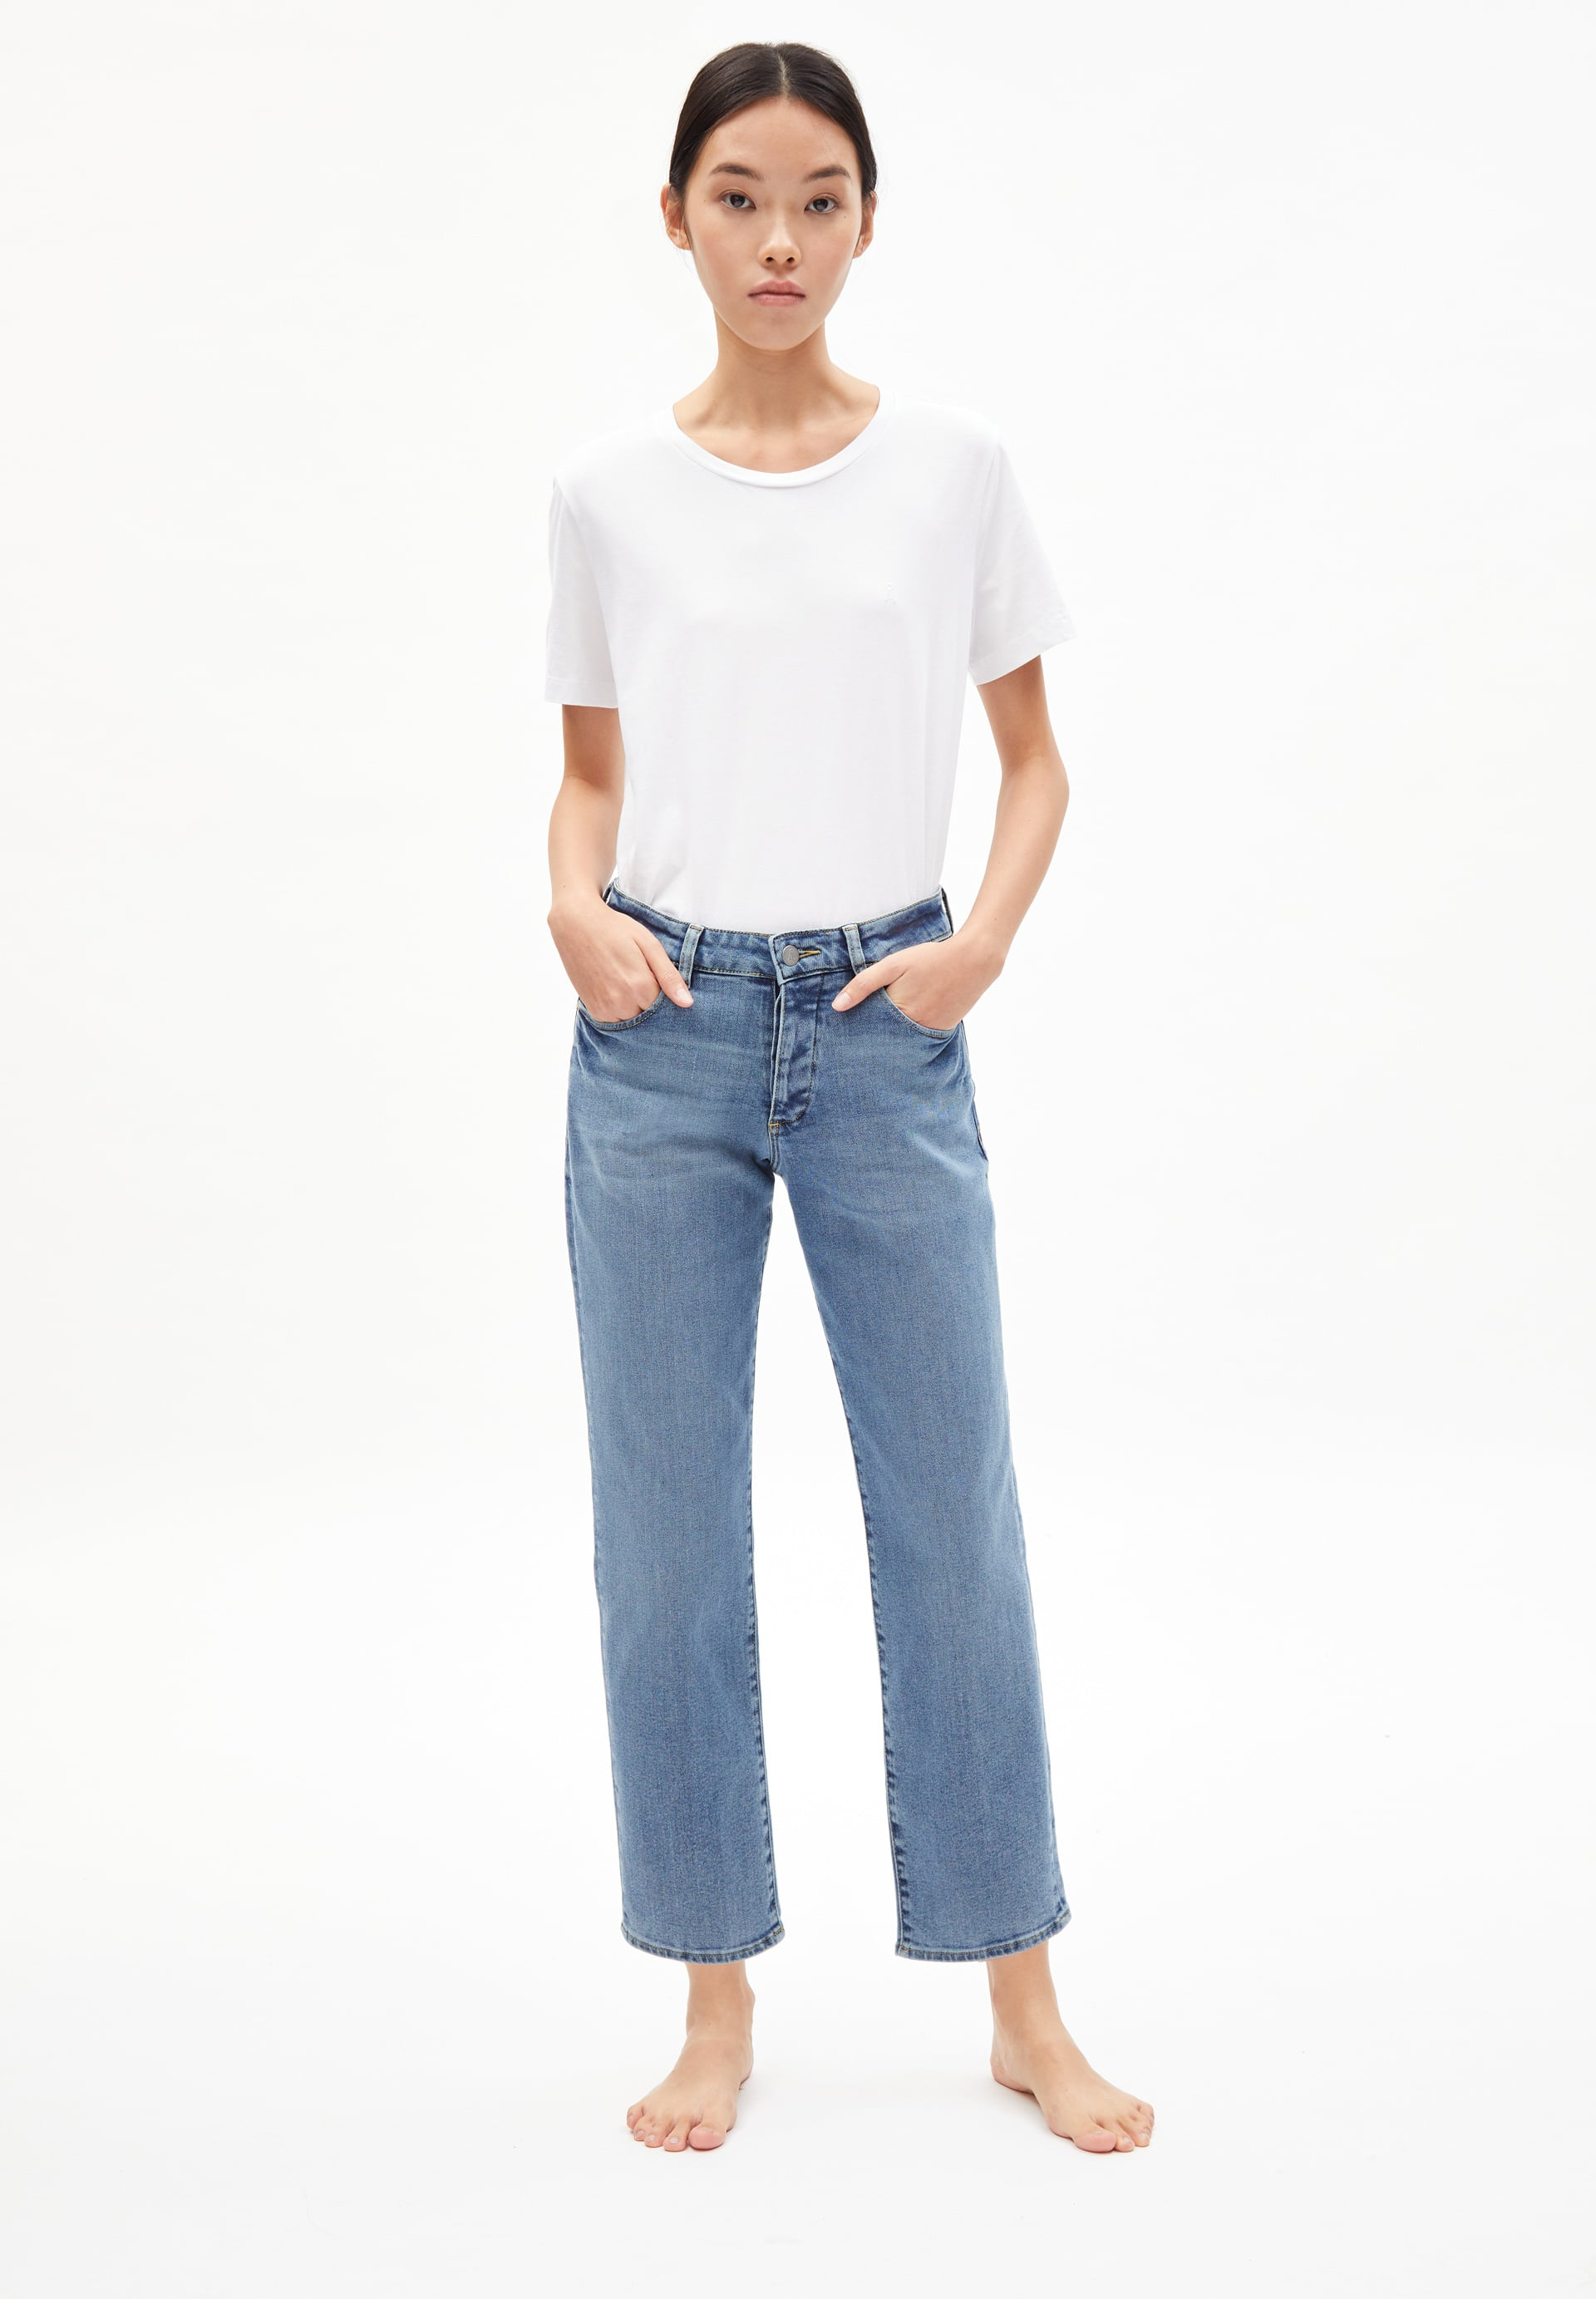 FJELLAA CR. CIRCULAR Coupe droite taille moyenne